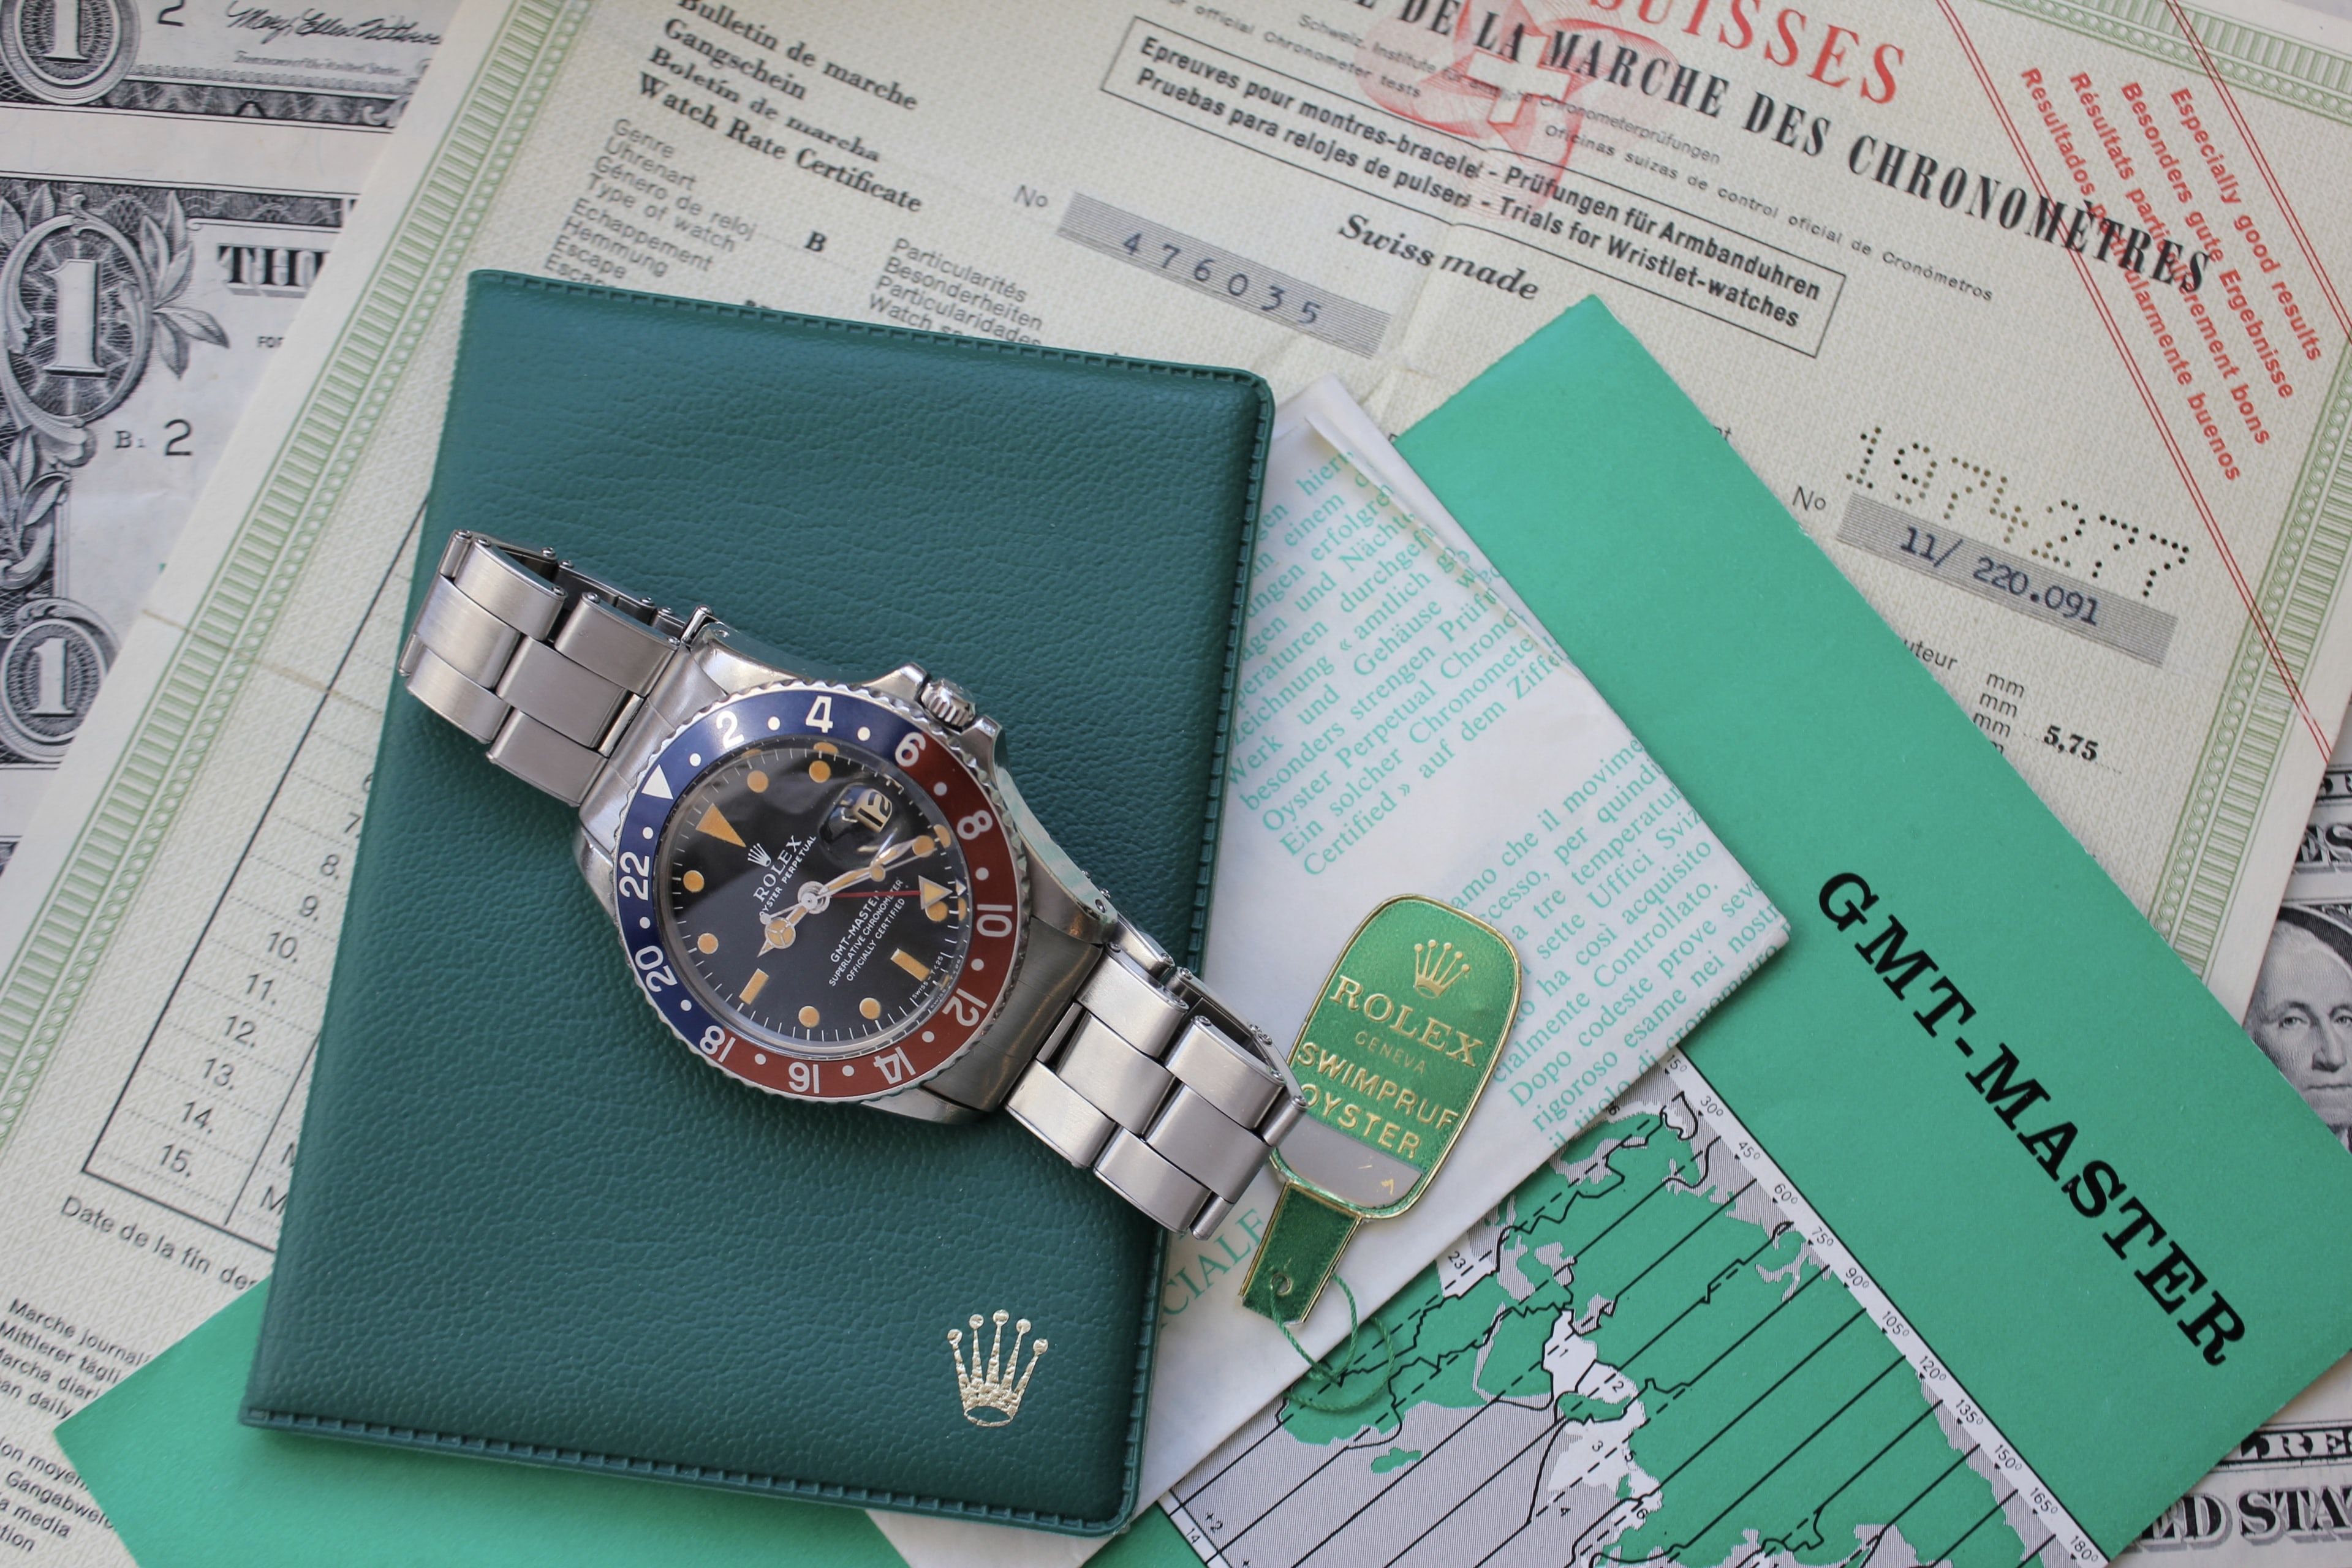 Rolex GMT-Master 1675 With Box And Papers Bring a Loupe: An Elegant Mido Multi-Centerchrono, A Military-Issued Heuer Autavia 73463, An Overlooked Cartier Tank Arrondie, A Full-Set Rolex GMT, And More Bring a Loupe: An Elegant Mido Multi-Centerchrono, A Military-Issued Heuer Autavia 73463, An Overlooked Cartier Tank Arrondie, A Full-Set Rolex GMT, And More 1675 full set